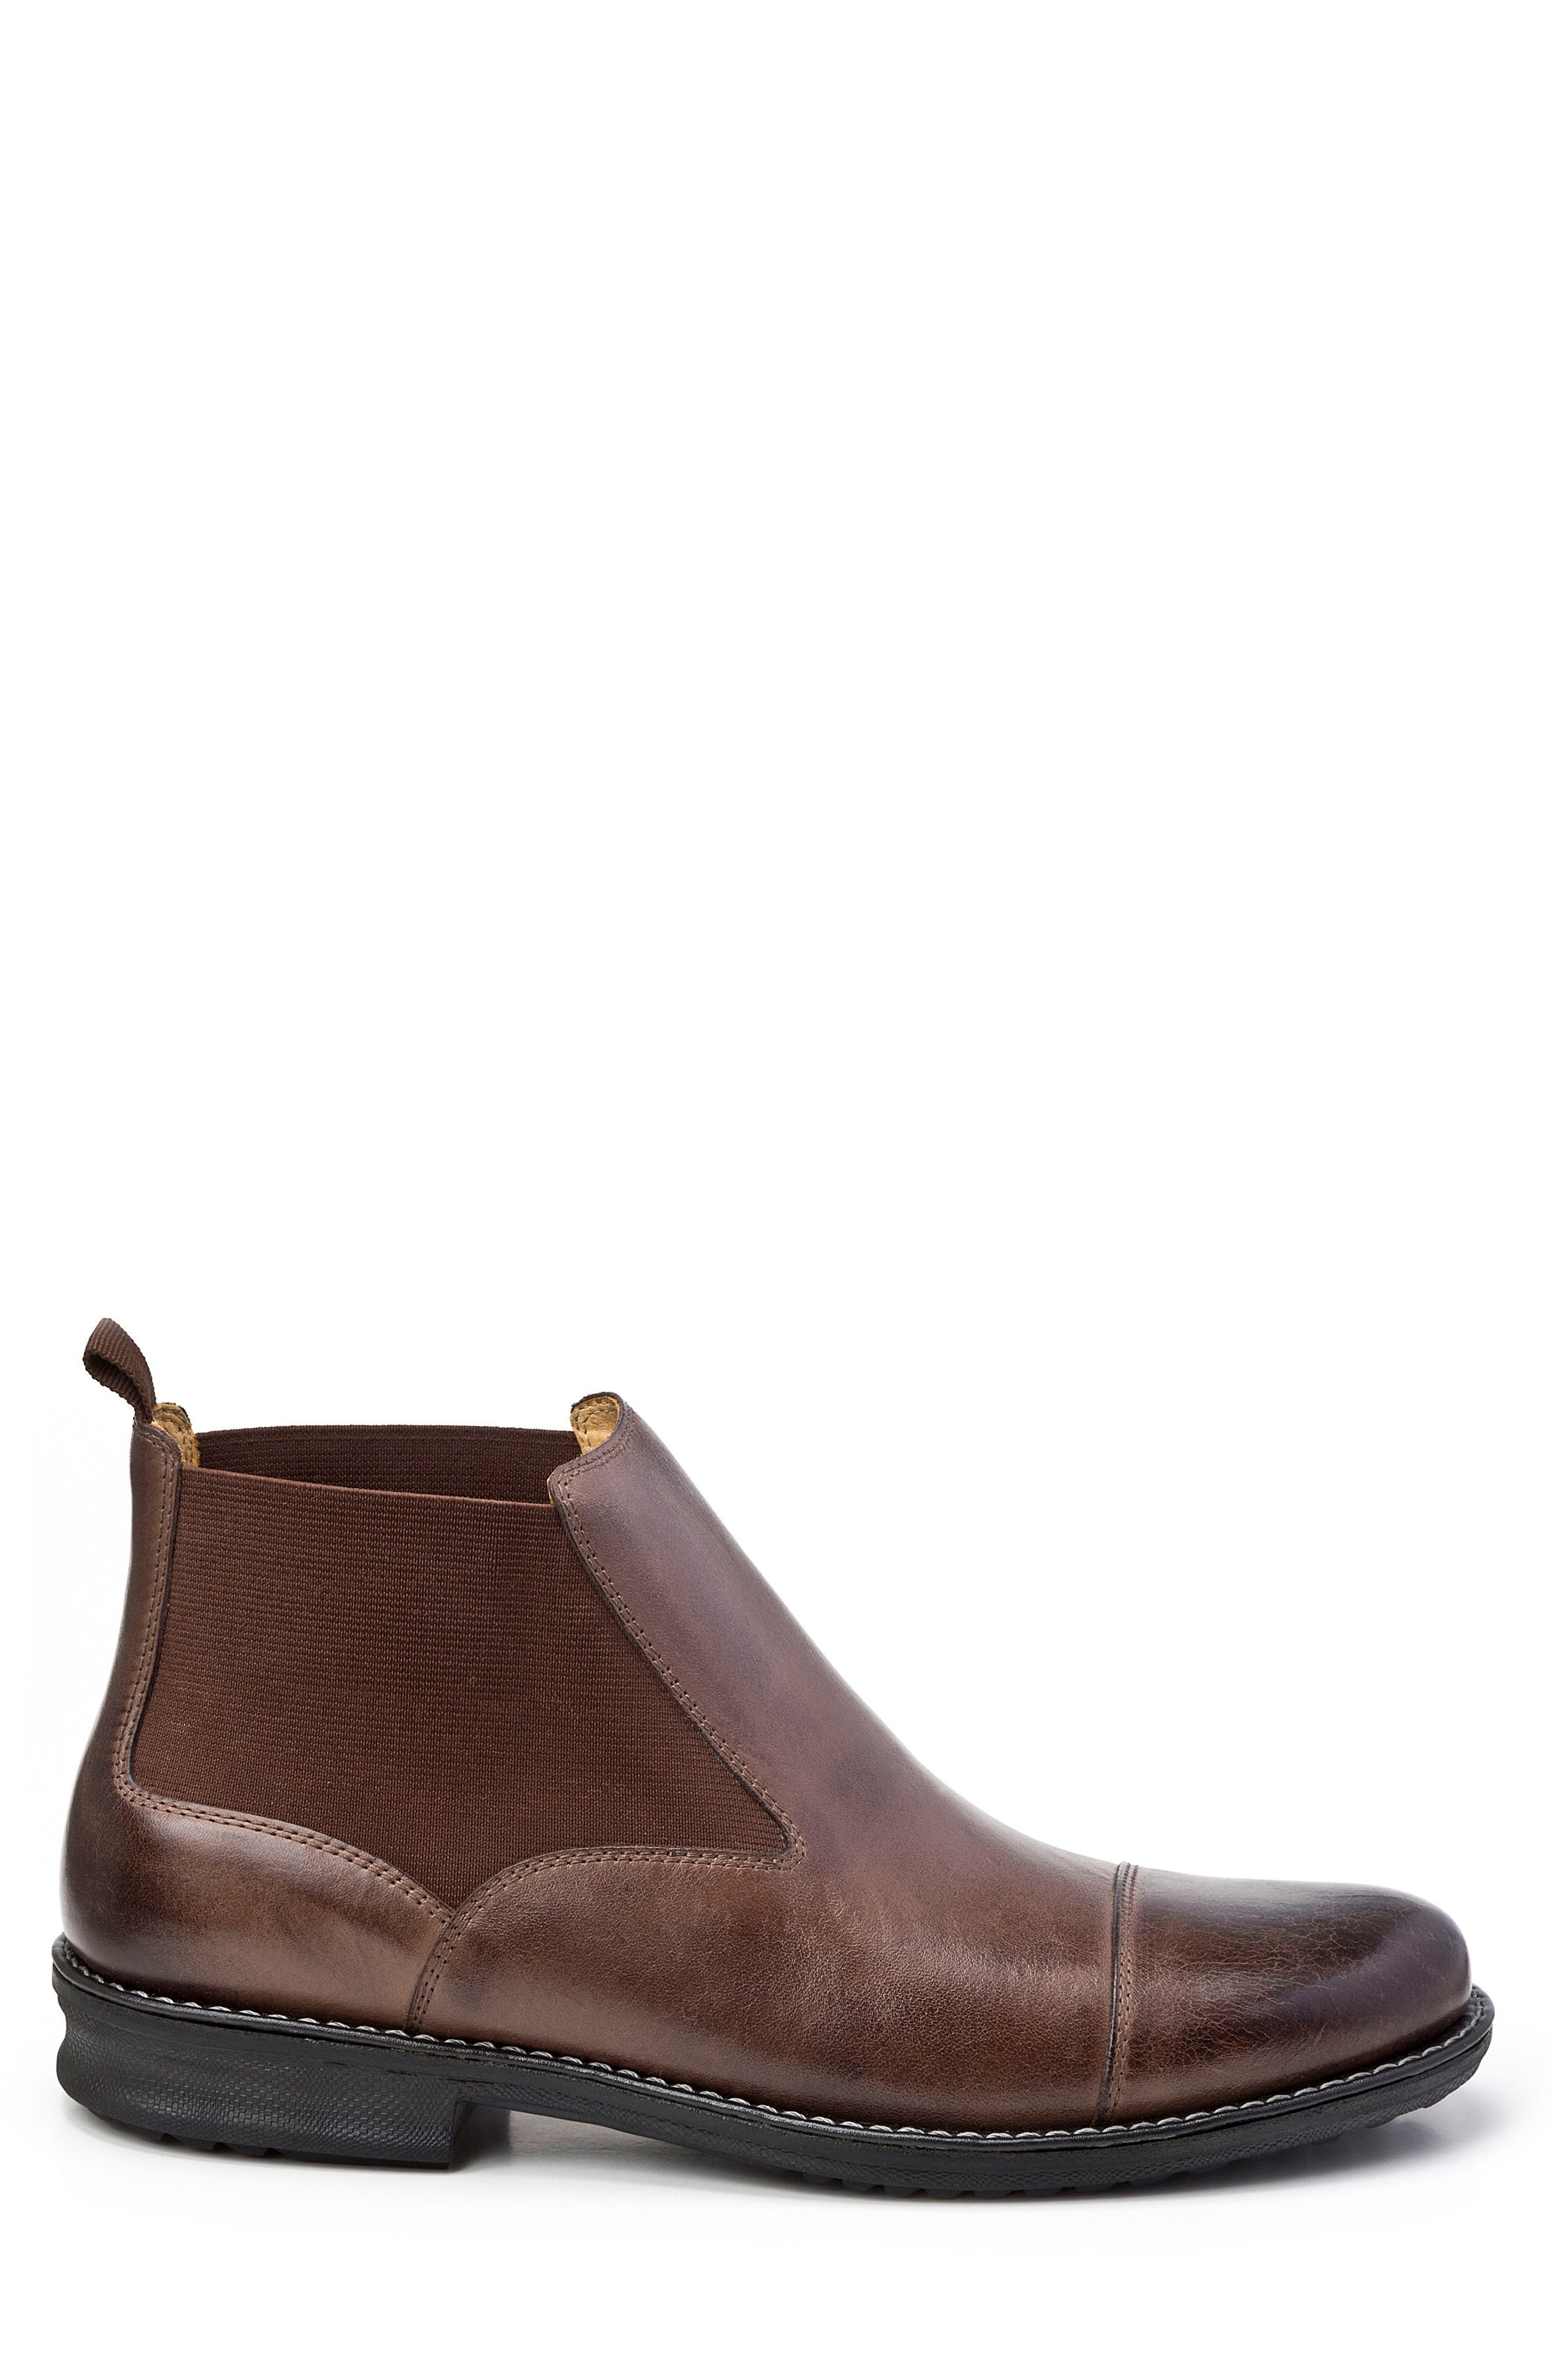 Norbert Chelsea Boot,                             Alternate thumbnail 3, color,                             Brown Leather